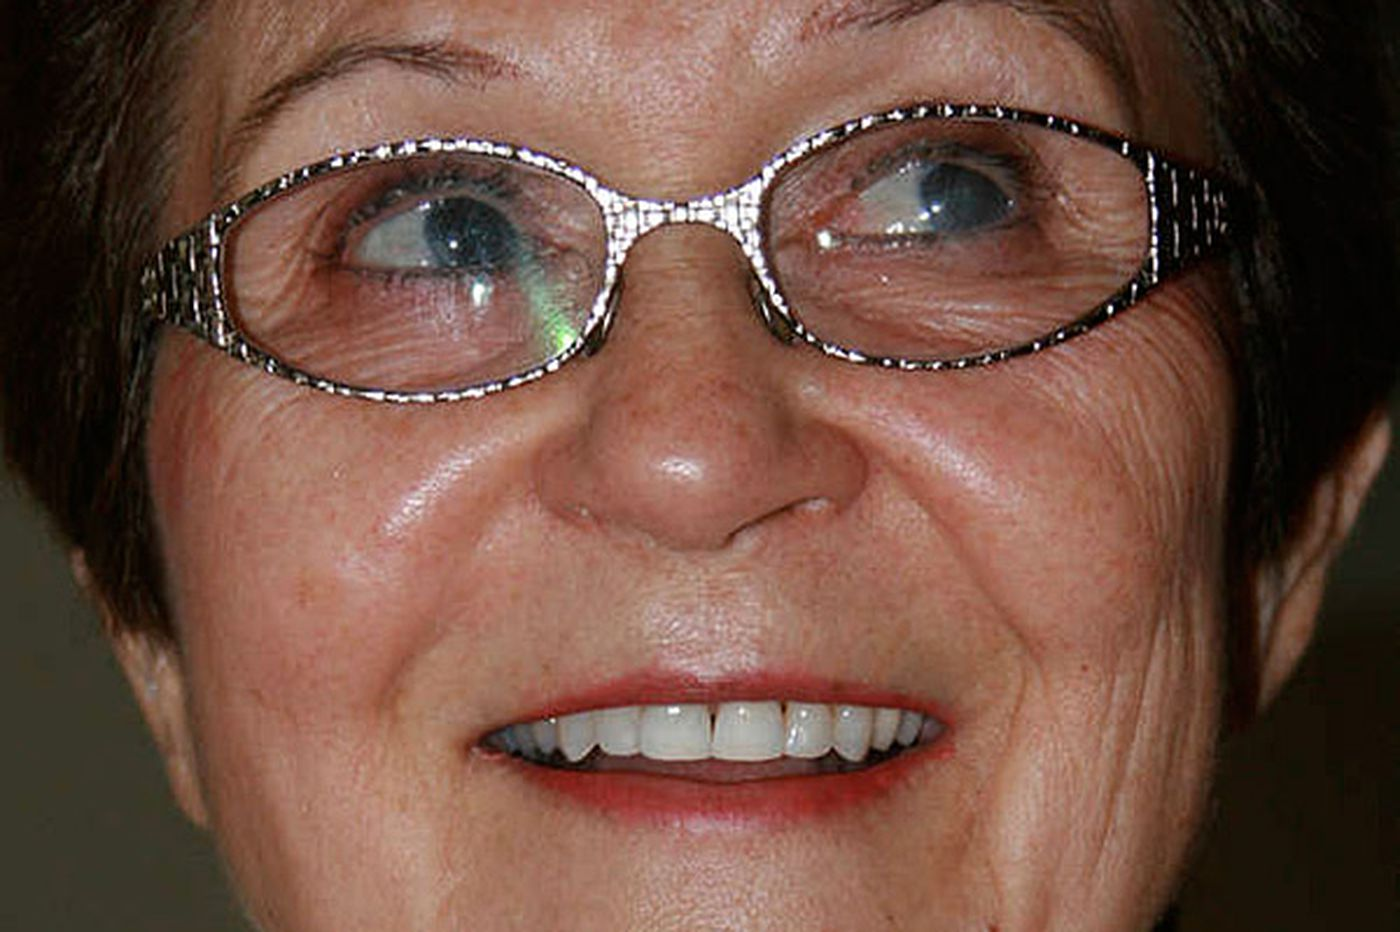 Joan F. Jaffe, 74, known for paintings